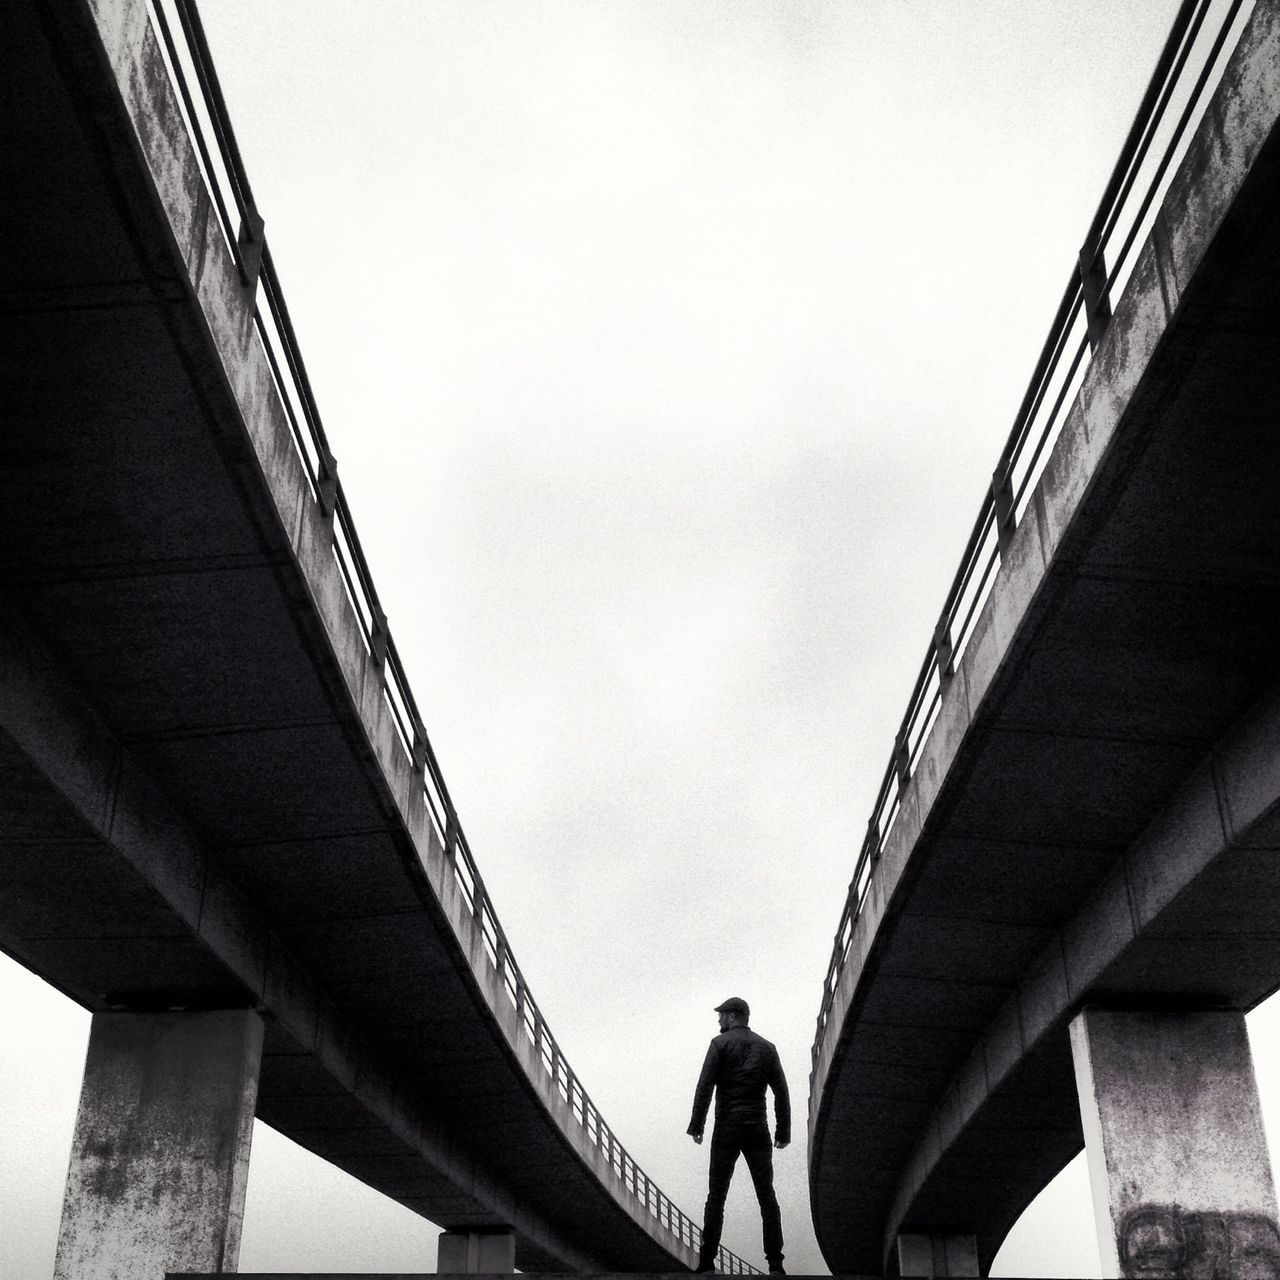 bridge - man made structure, architecture, connection, low angle view, built structure, real people, below, lifestyles, one person, day, transportation, leisure activity, women, standing, outdoors, full length, sky, people